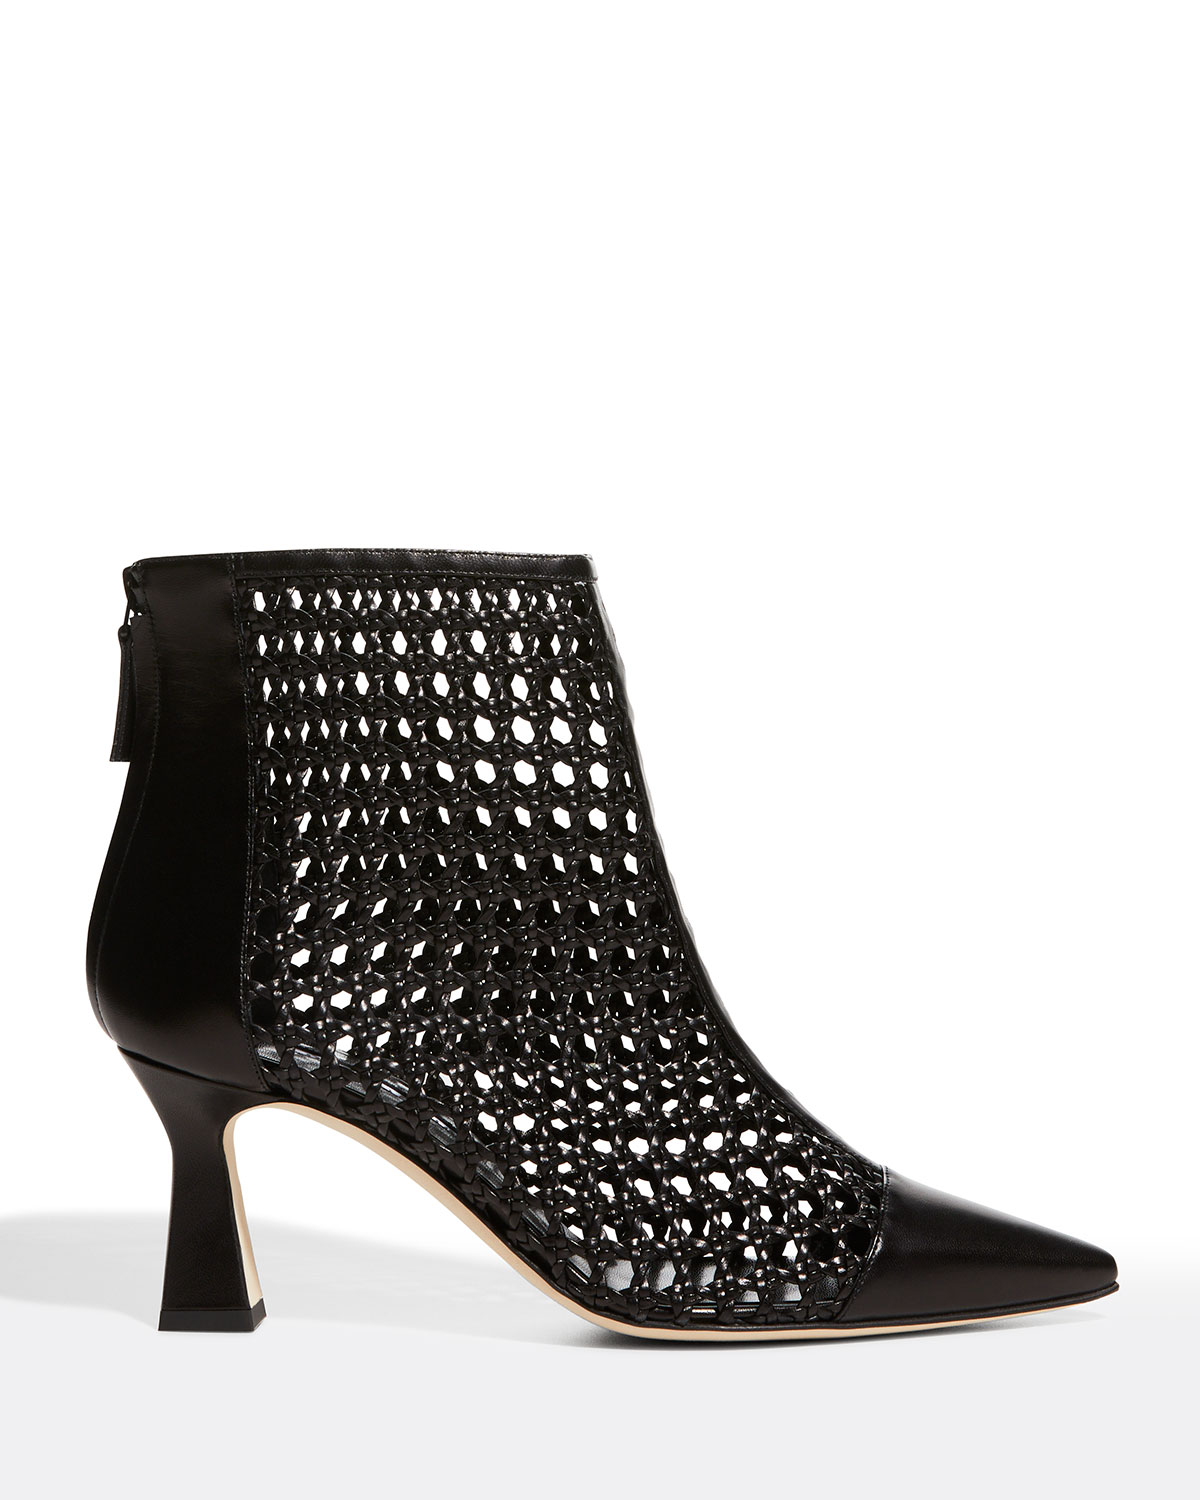 Griego Netted Zip Ankle Booties